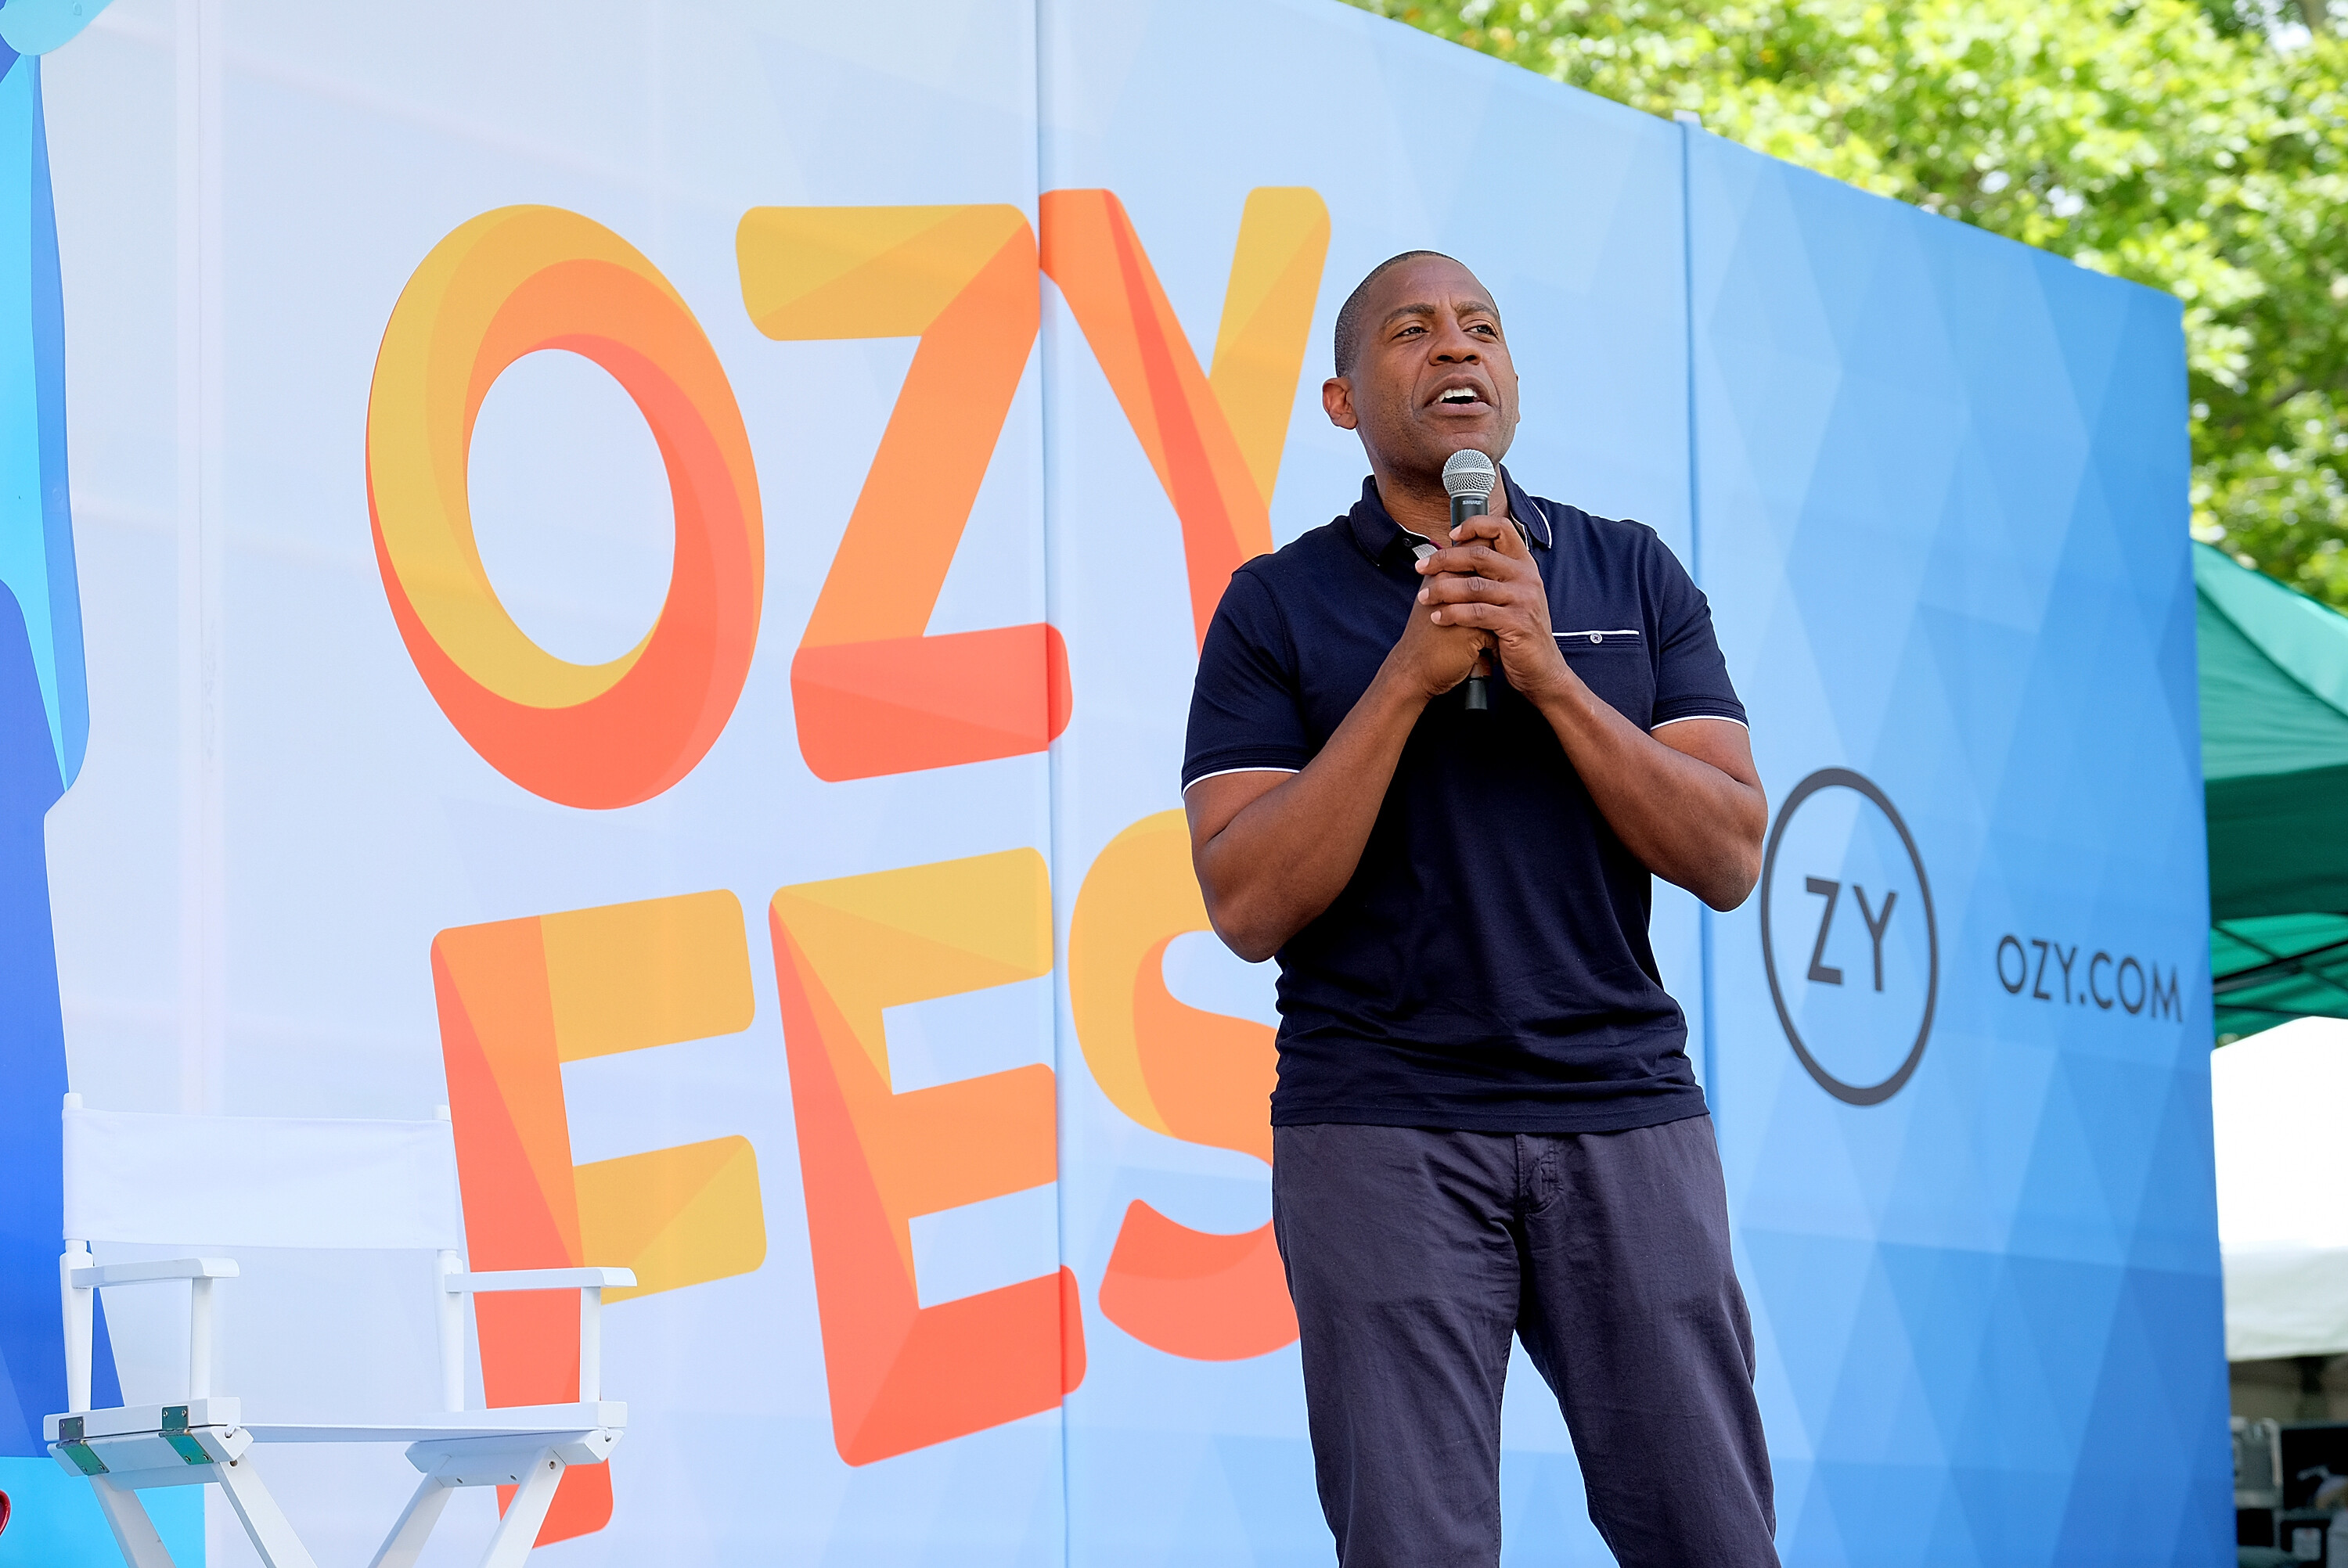 Ozy Media is shutting down after a week of scrutiny into its business